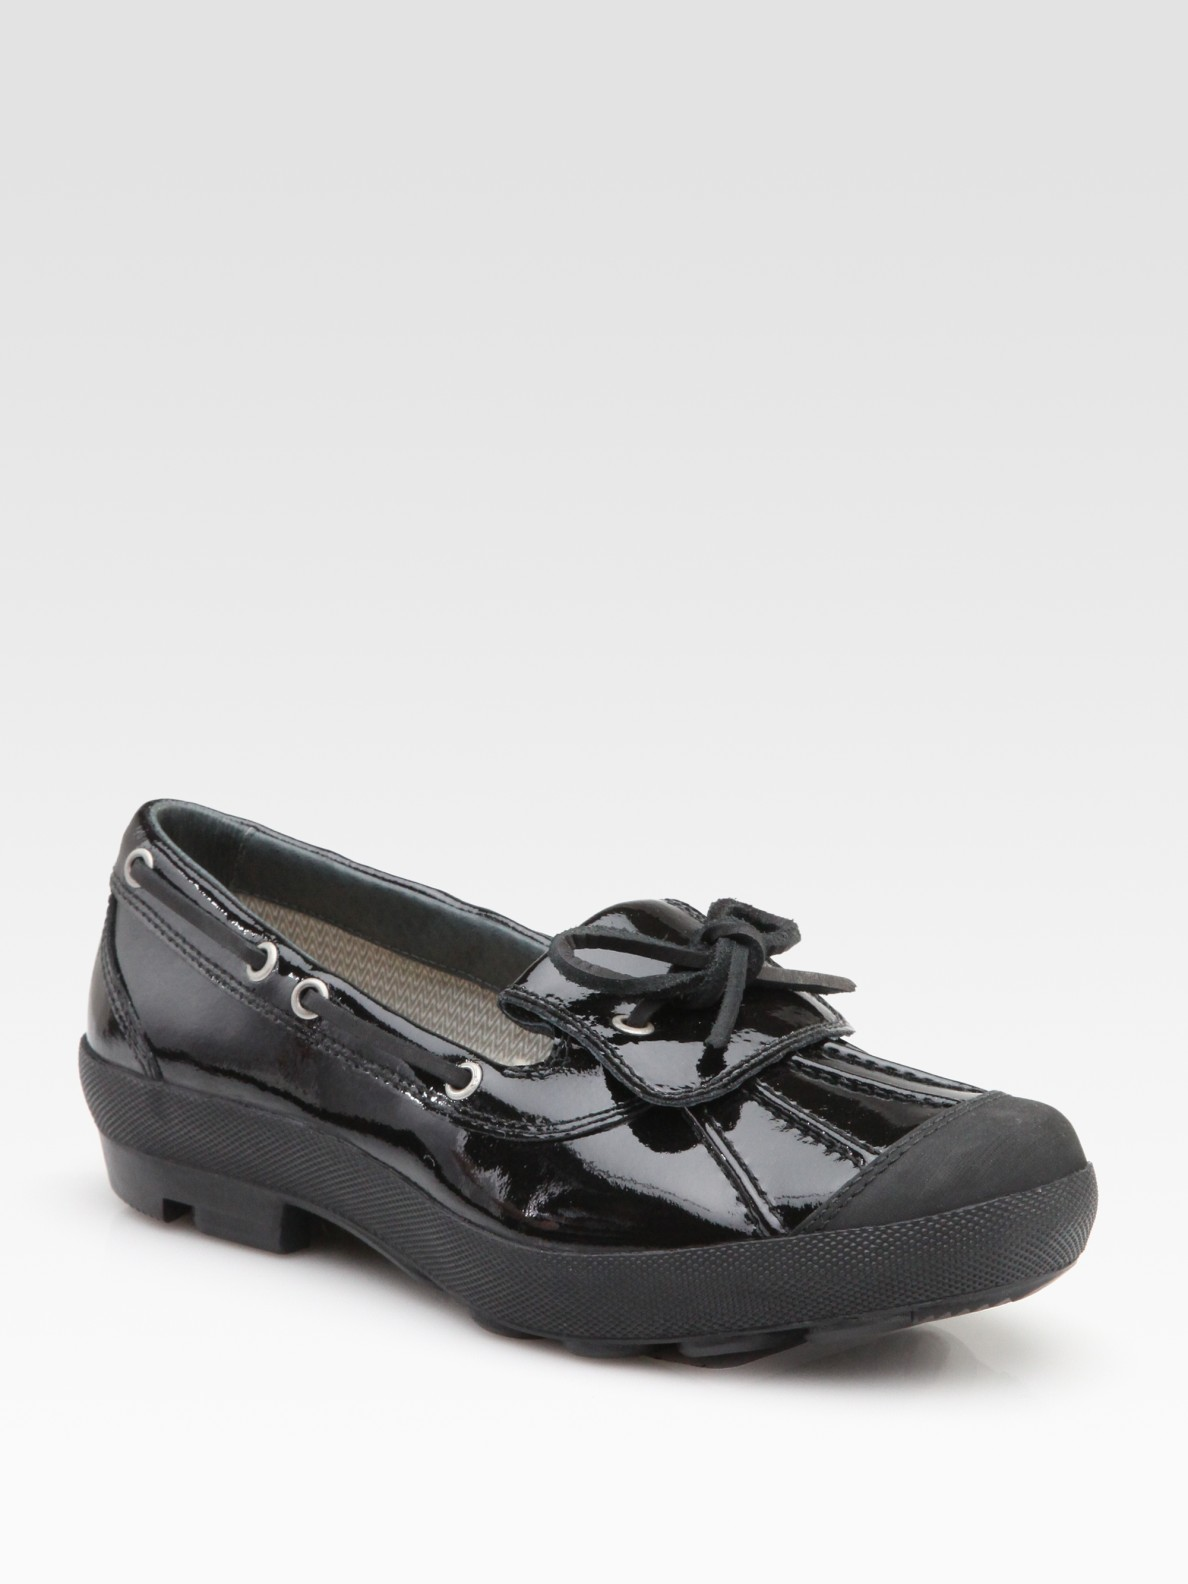 ugg ashdale patent leather rain shoes in black lyst